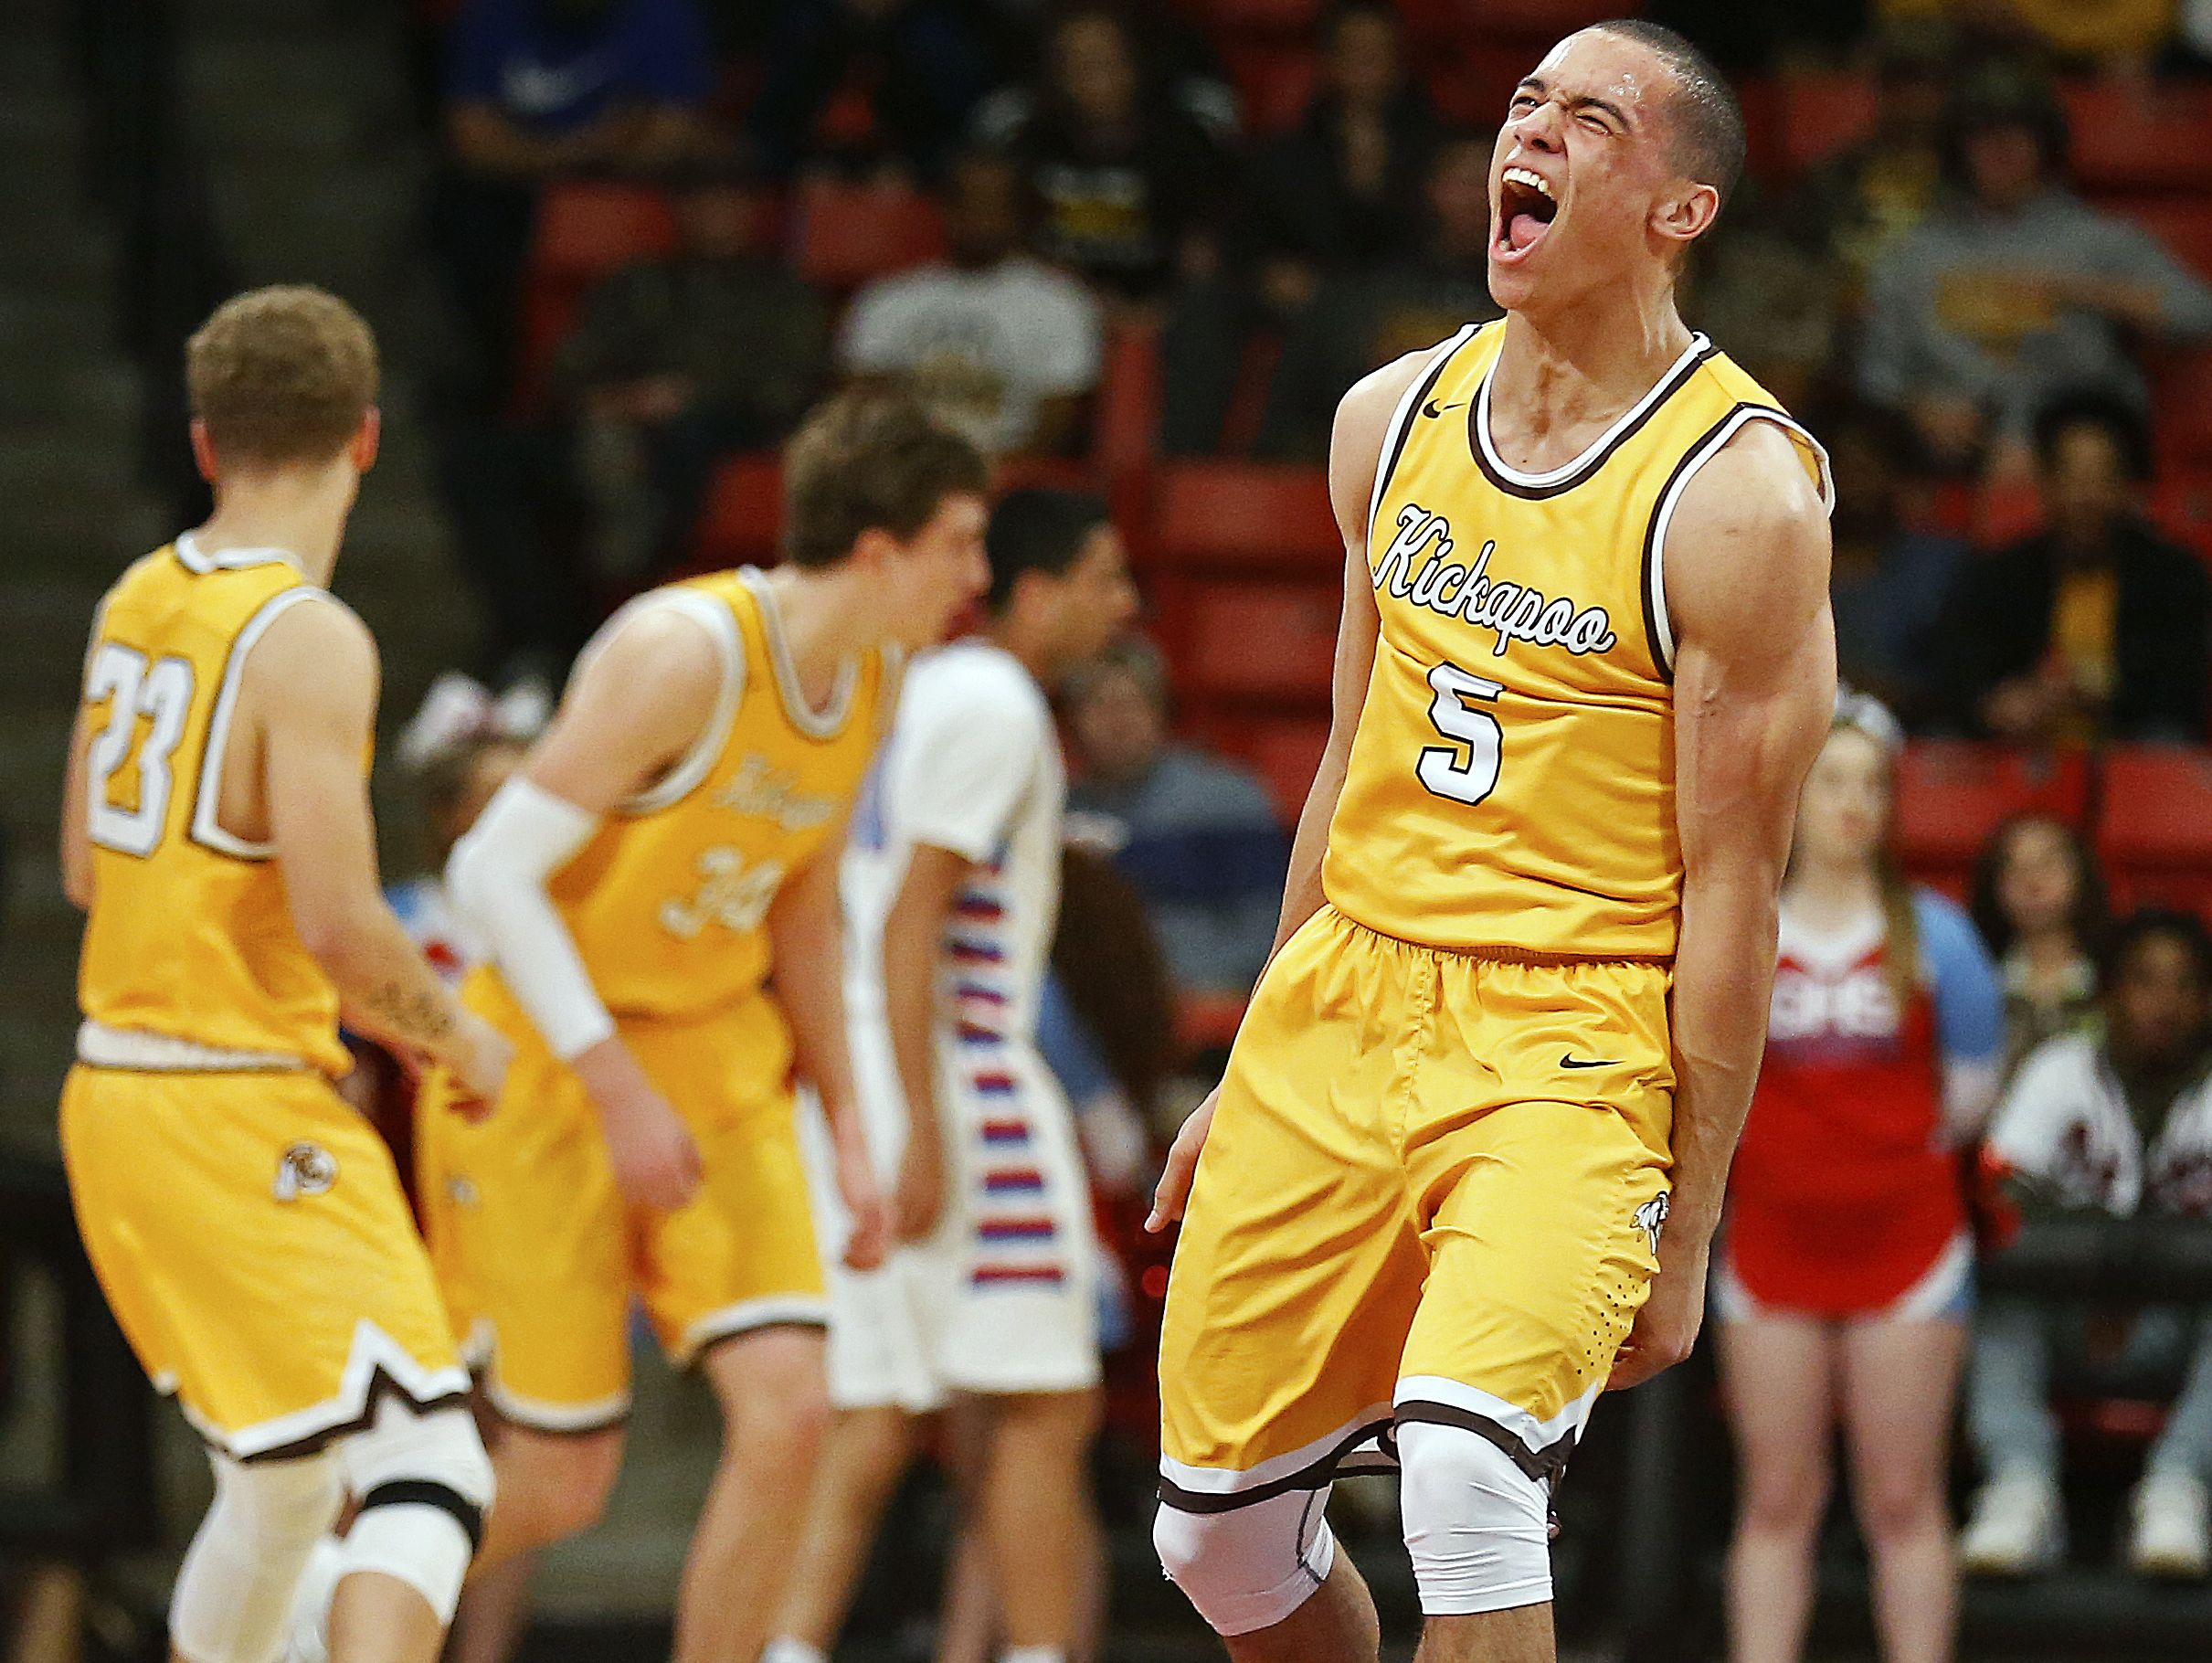 Kickapoo Chiefs senior Cameron Davis (5) reacts to a Chiefs score during second quarter action of the high school basketball game between the Glendale High School Falcons and the Kickapoo High School Chiefs at O'Reilly Family Event Center in Springfield, Mo. on Feb. 7, 2017. The Kickapoo Chiefs won the game 96-77.